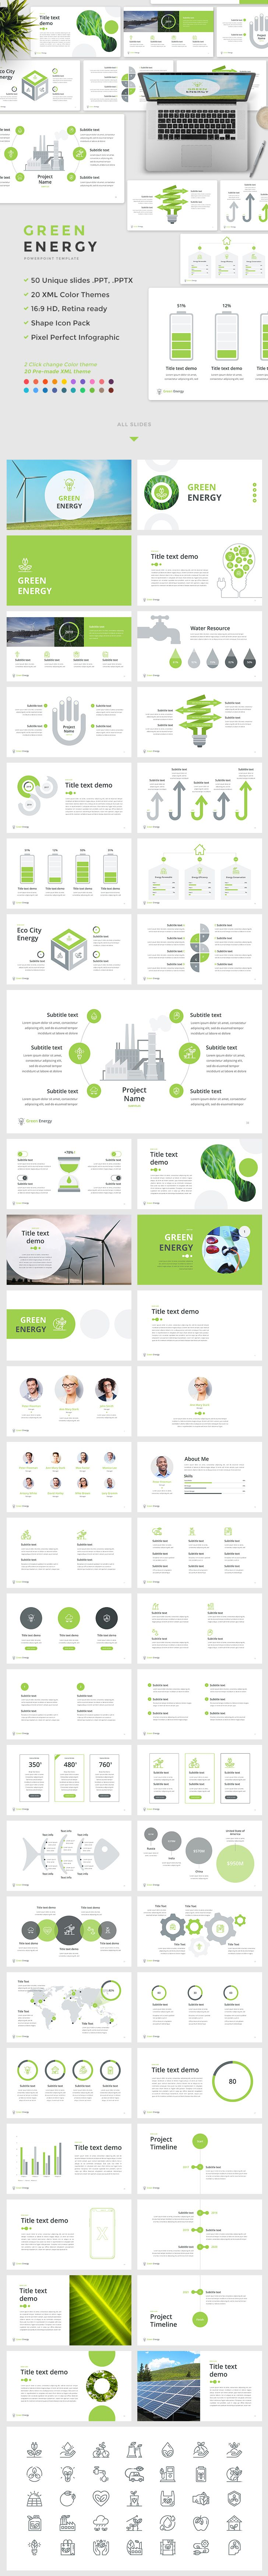 Green energy powerpoint template 50 unique slides ppt pptx 20 green energy powerpoint template 50 unique slides ppt pptx 20 pre made color themes xml files pixel perfect infographic shape icon pack no need toneelgroepblik Choice Image